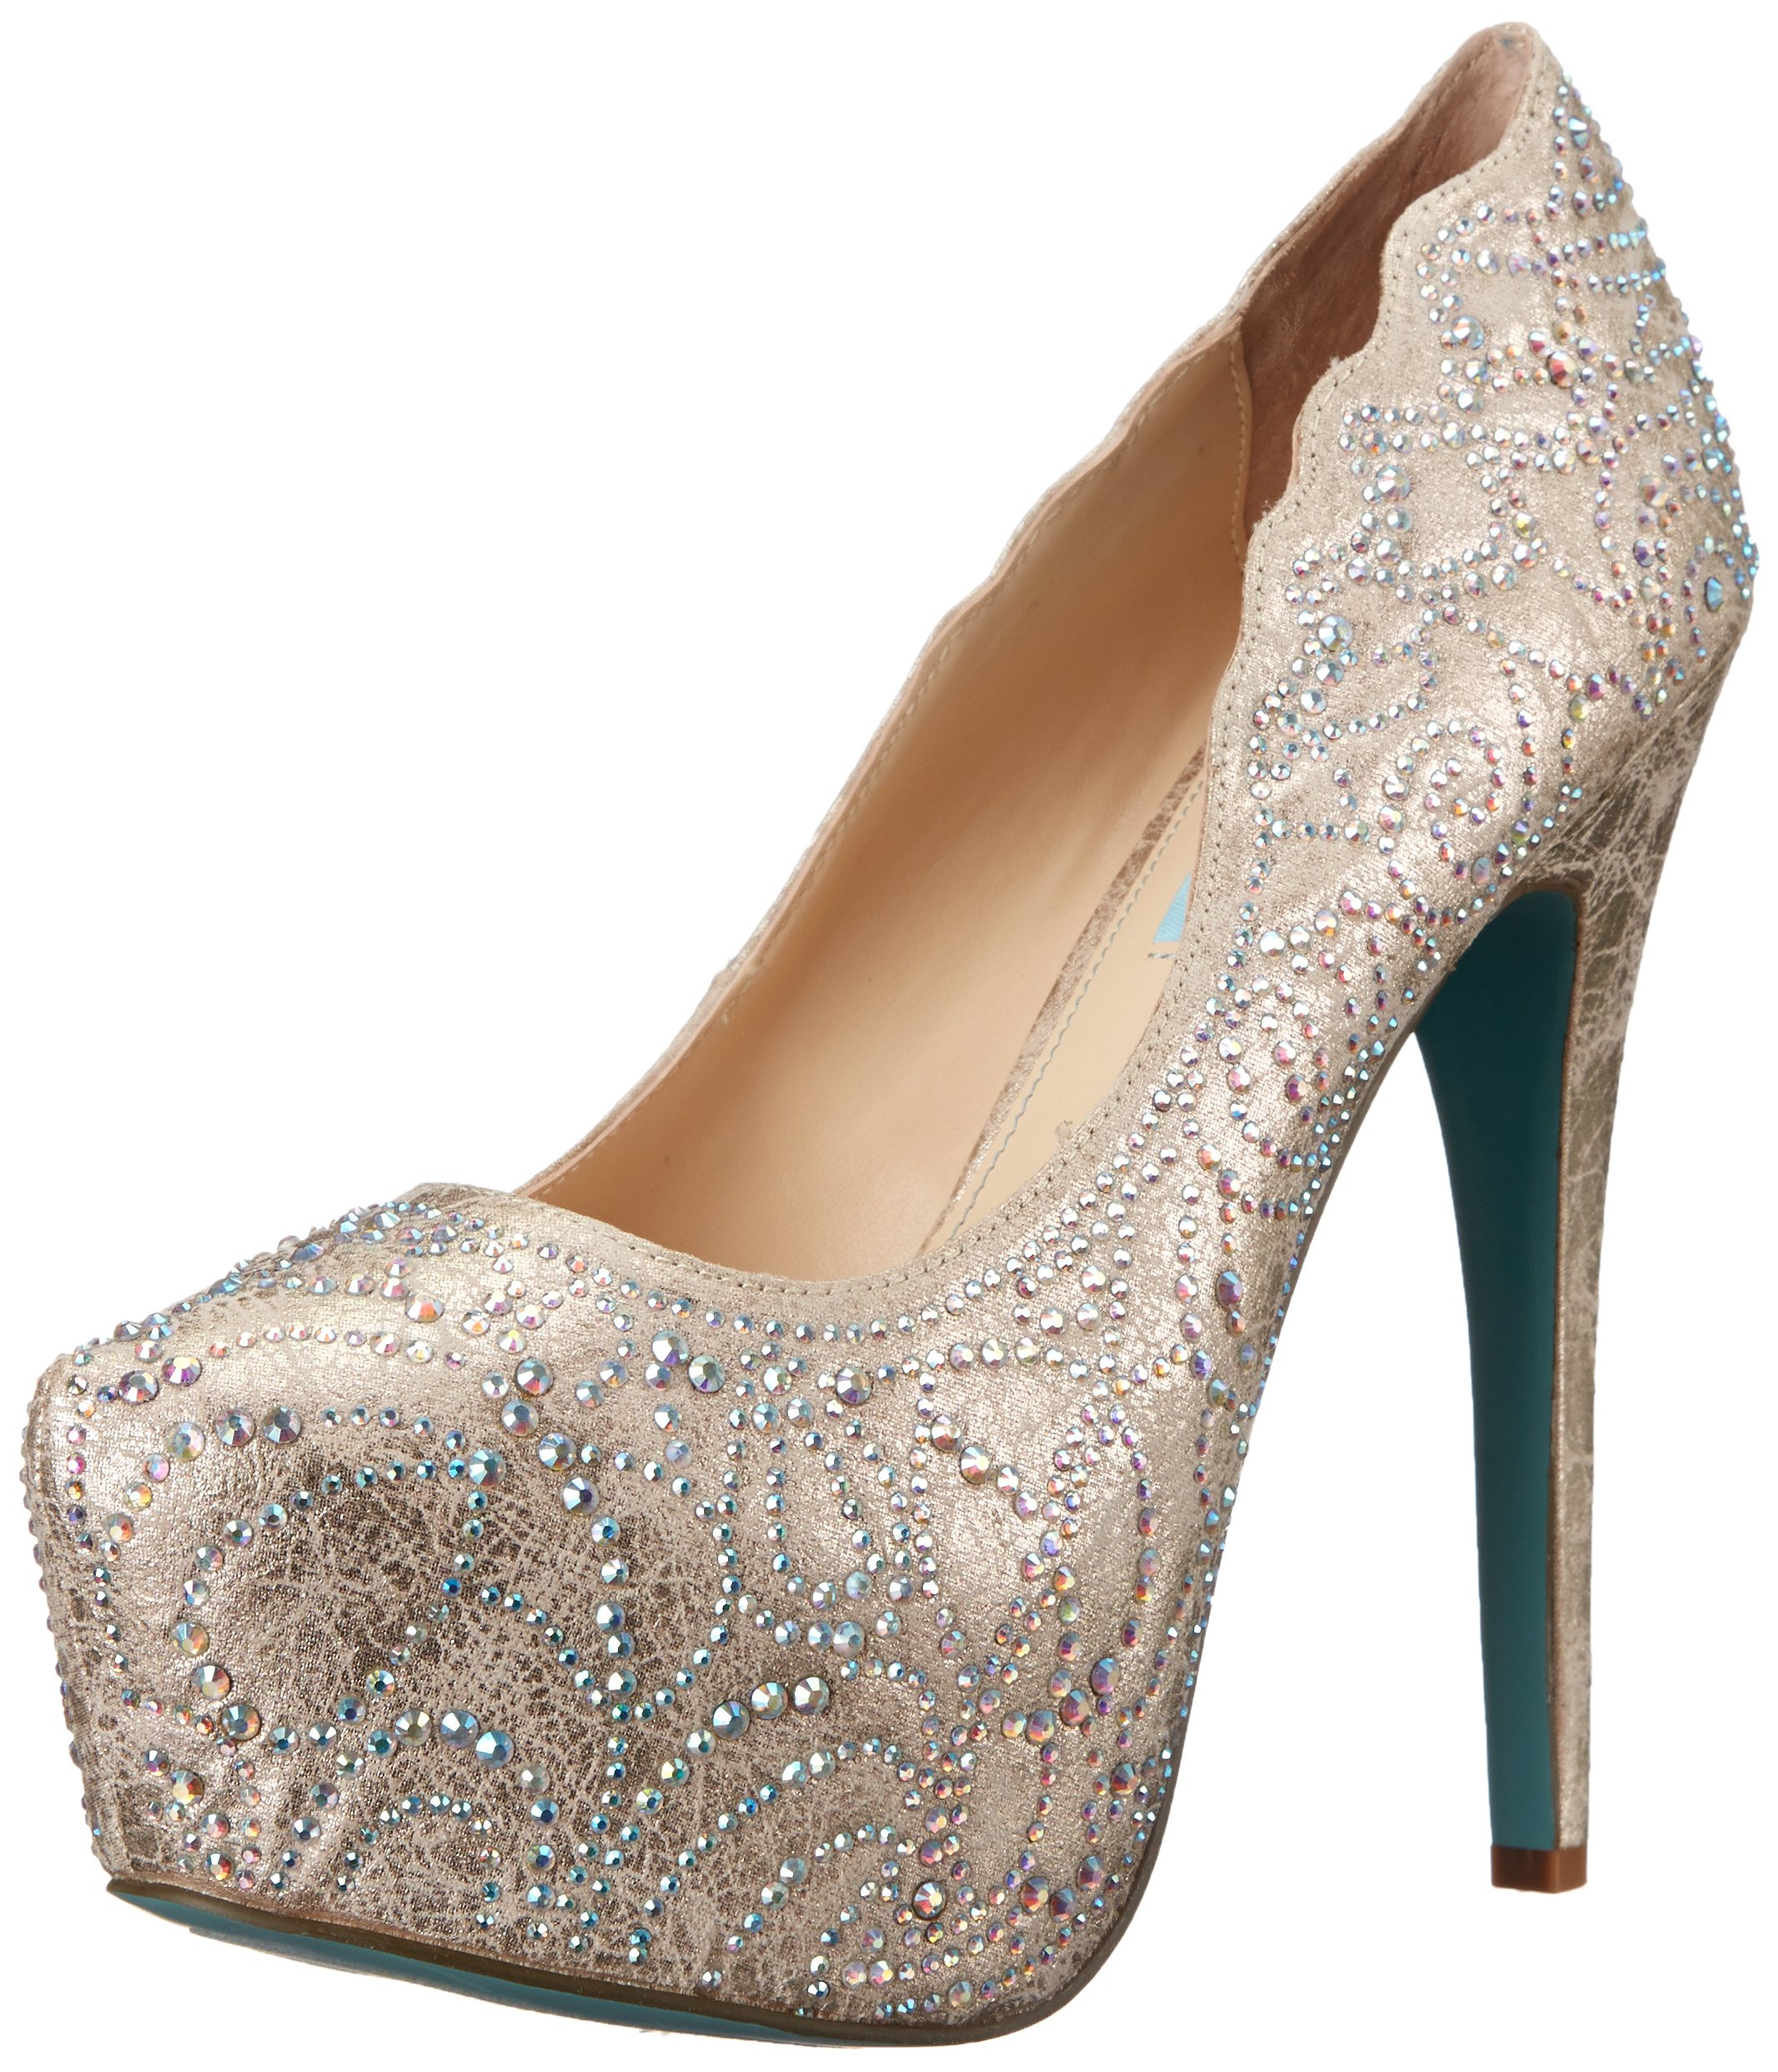 Blue by Betsey Johnson Women's SB-Lucia Dress Pump, Champagne, 8 M US by Betsey Johnson